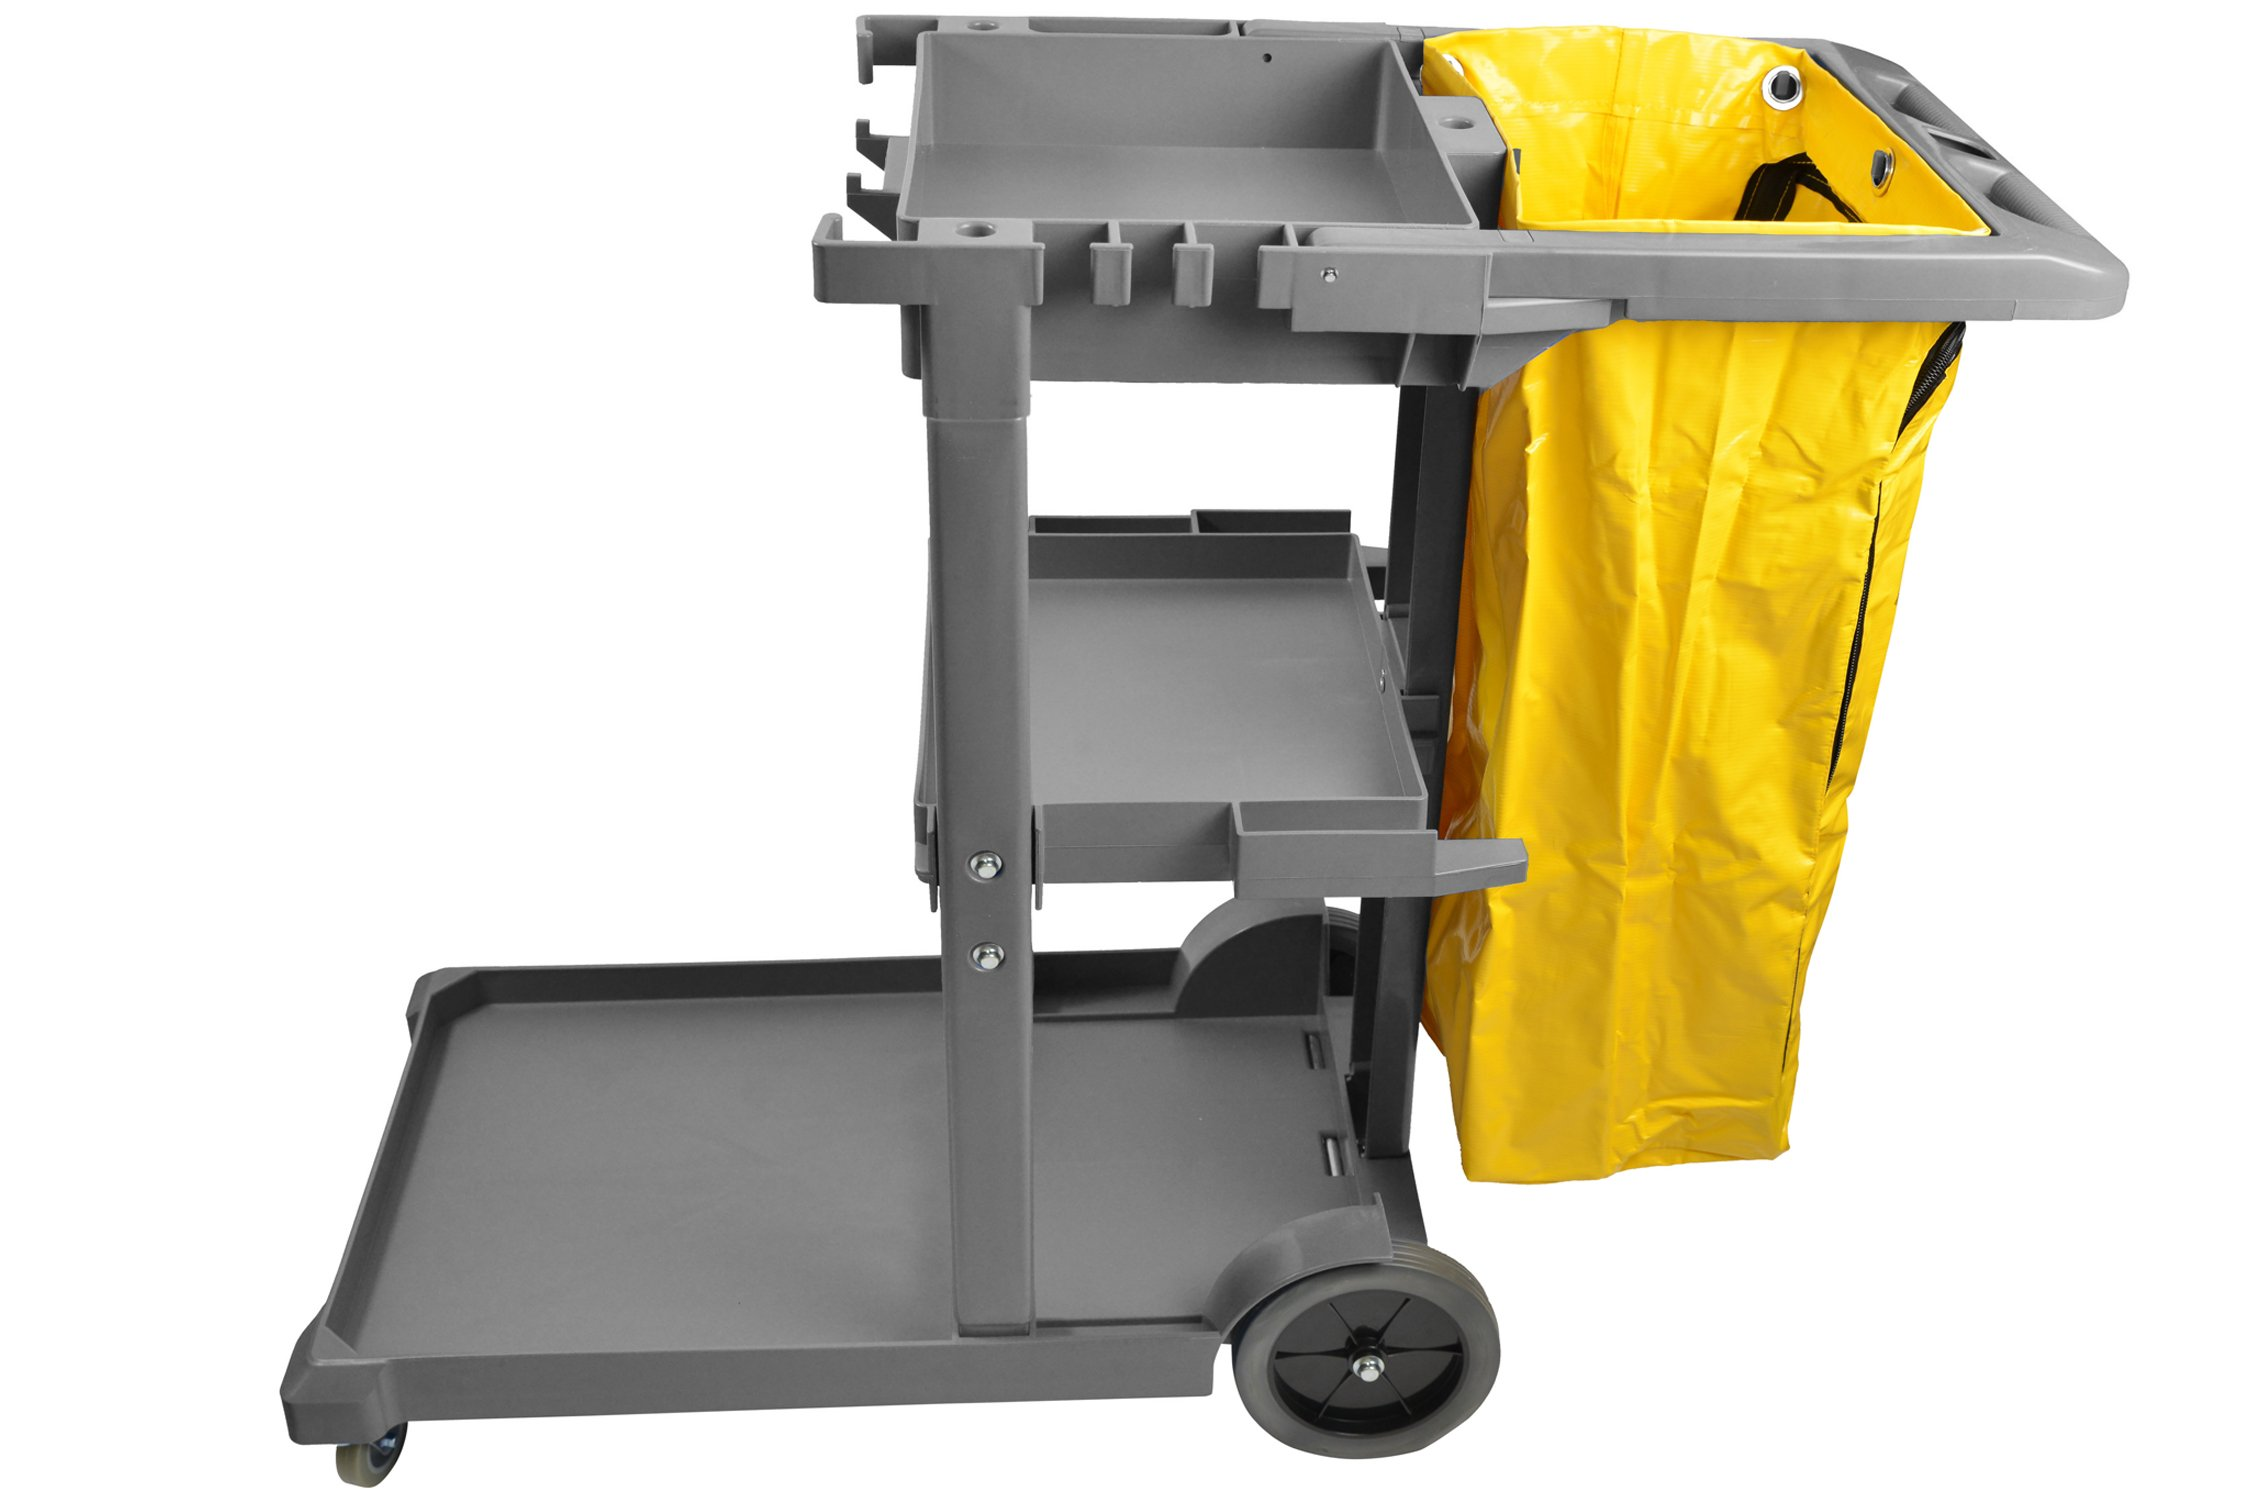 Janico 1050 Janitor Cart Commercial Housekeeping Utility Cart with 3 Shelfs, 25 Gallon Zippered Yellow Vinyl Bag, Grey, Pack of 1